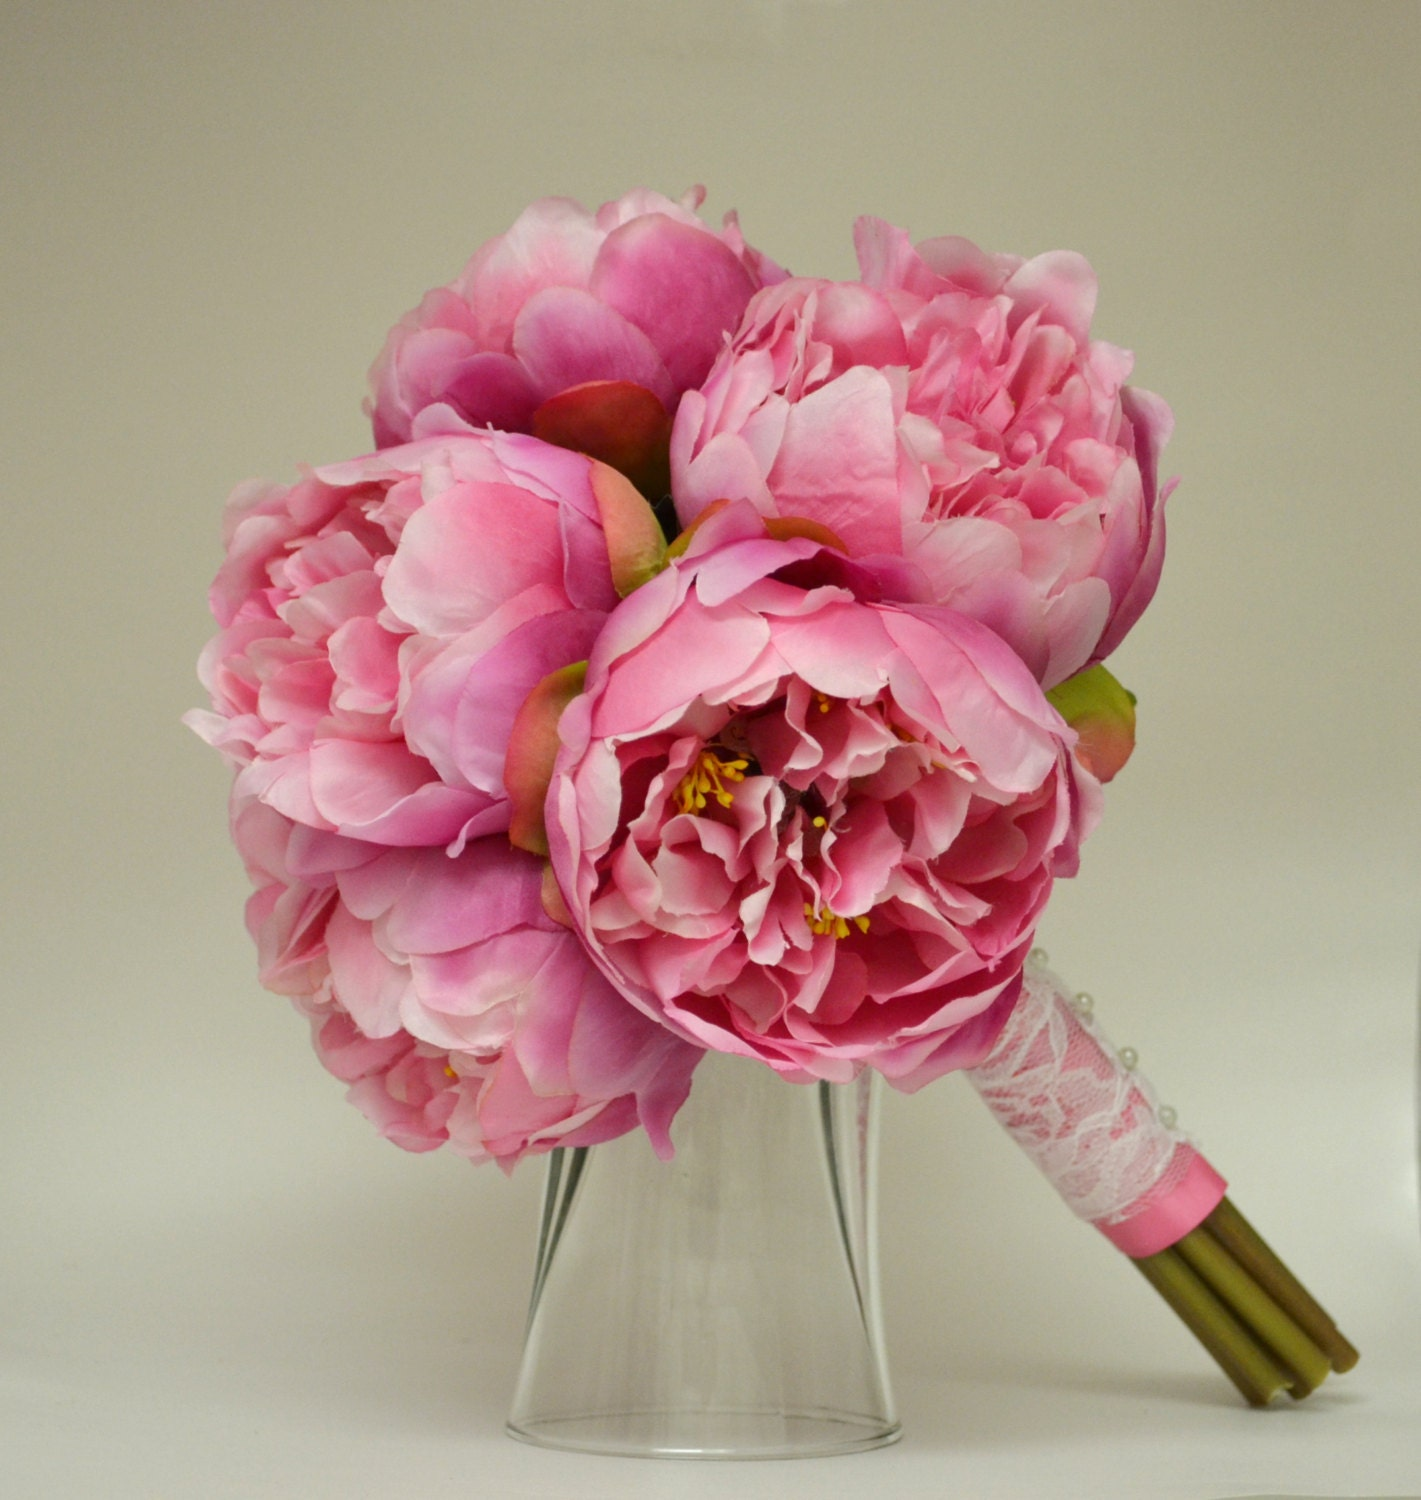 Silk peony bouquet hot pink peonies shabby chic peony flowers rustic chic lace pink silk bouquet bridesmaid bouquet vintage inspired zoom izmirmasajfo